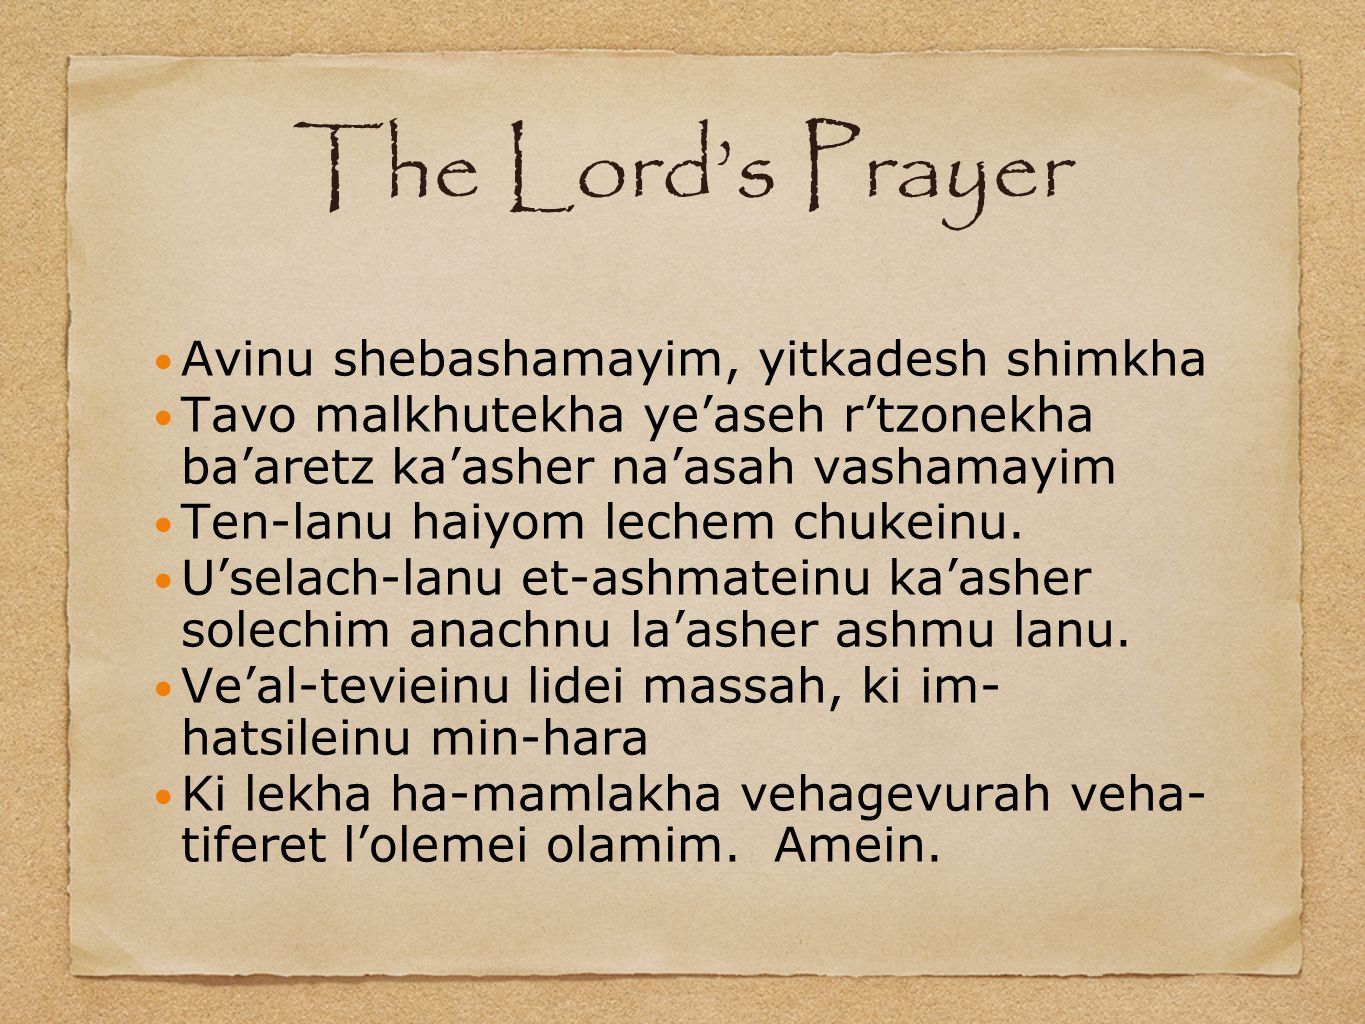 The Lord's Prayer Avinu shebashamayim, yitkadesh shimkha Tavo malkhutekha ye'aseh r'tzonekha ba'aretz ka'asher na'asah vashamayim Ten-lanu haiyom lechem chukeinu.